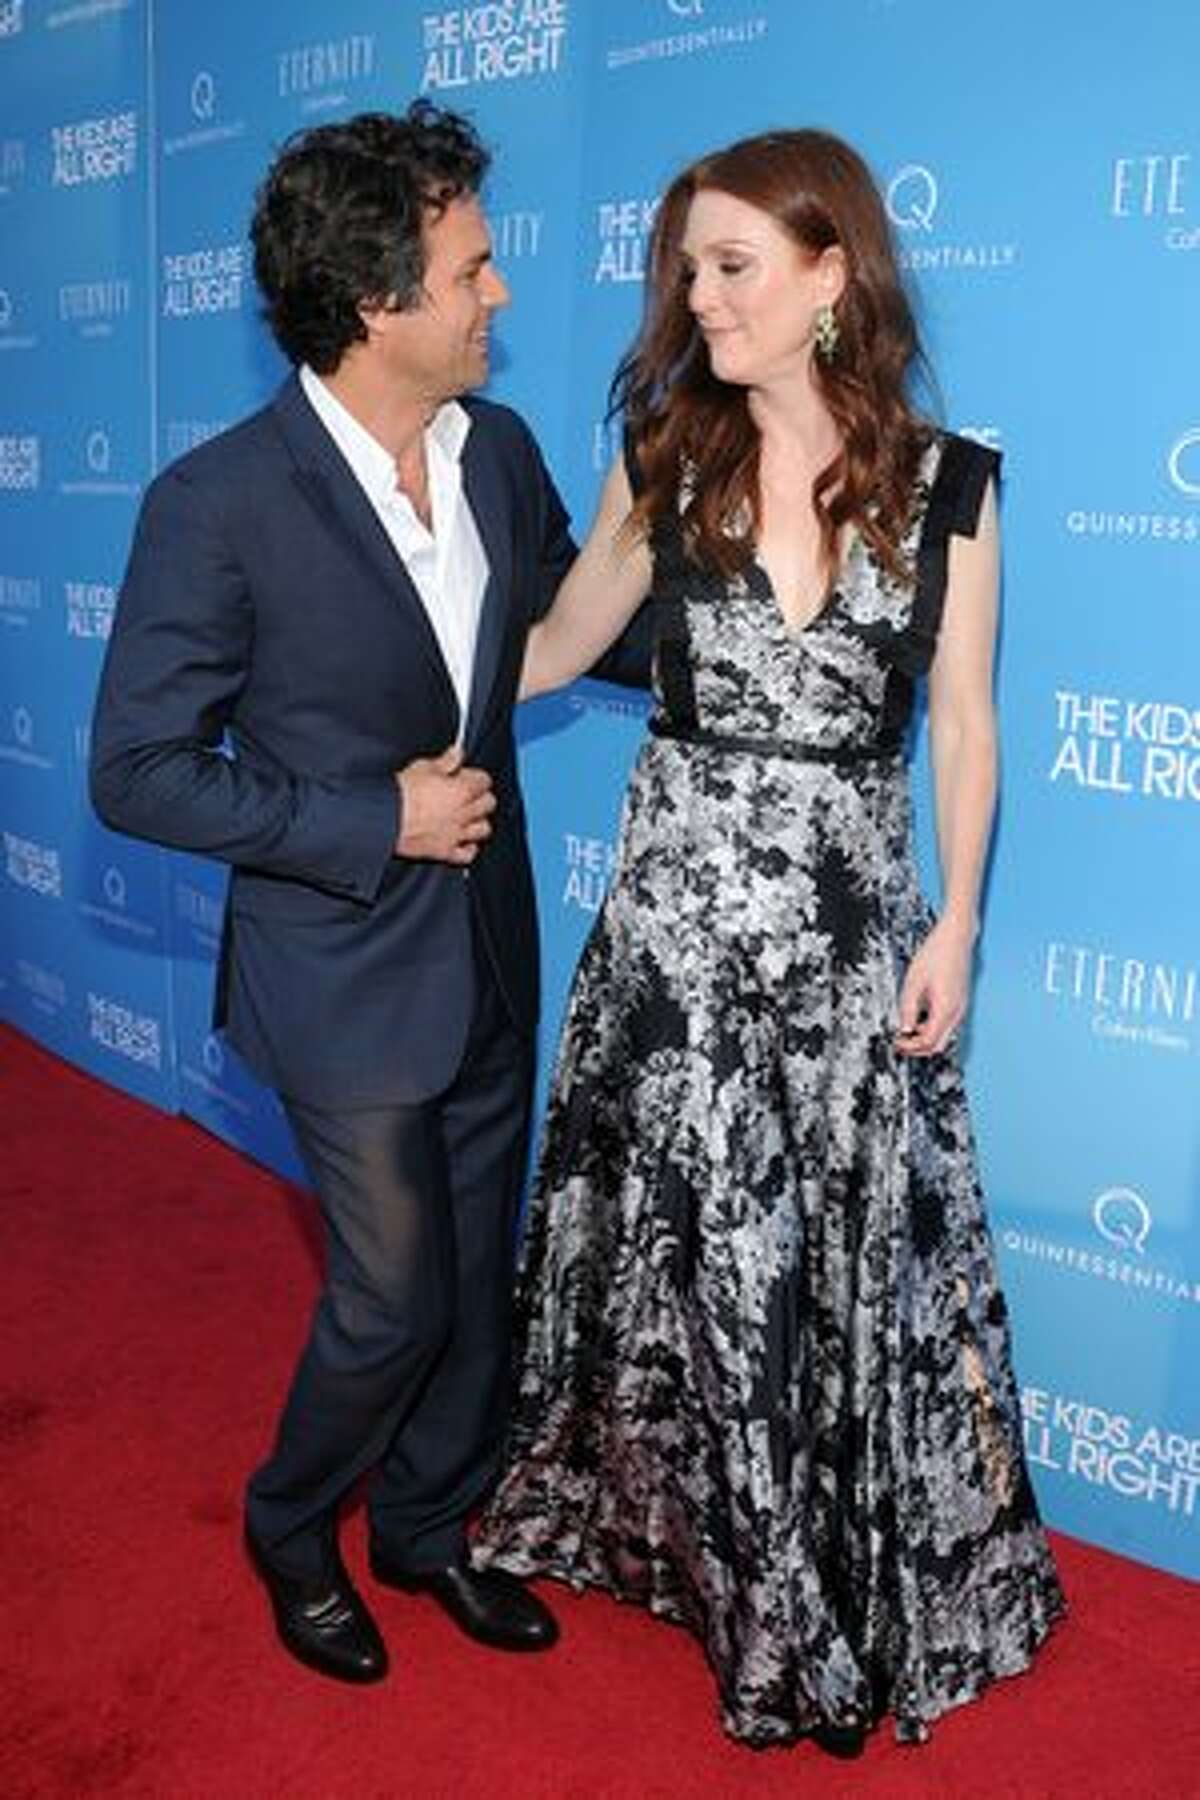 Actors Mark Ruffalo and Julianne Moore attend the premiere of the